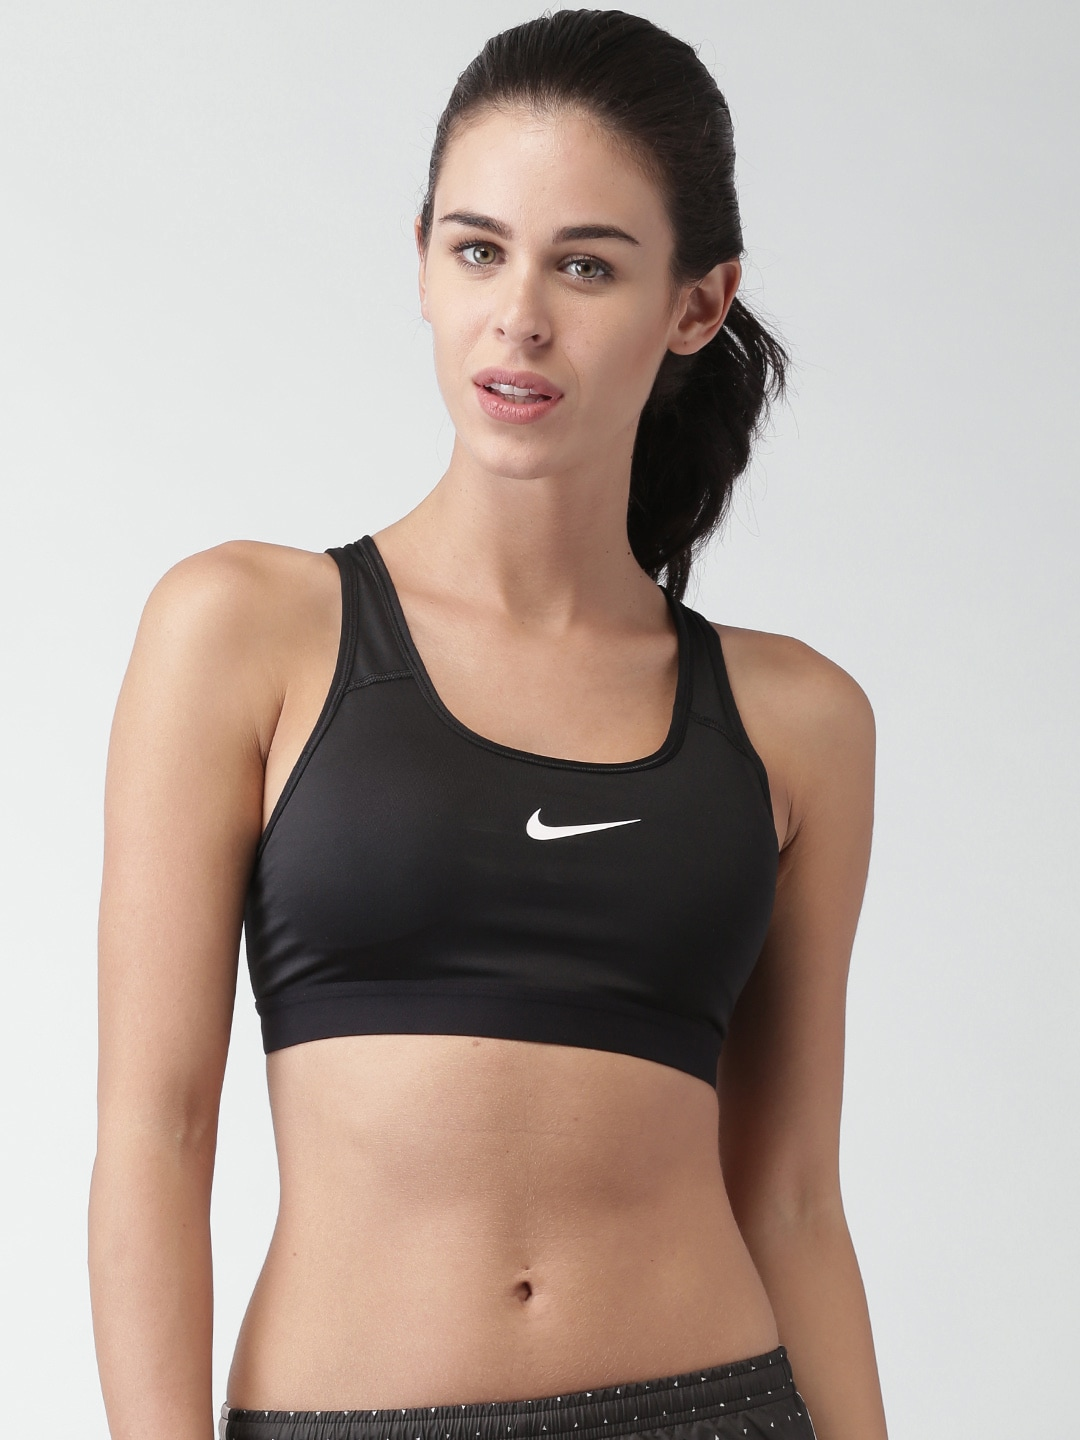 2340f35b18ed3 Sports Bra - Shop Online For Women Sports Bras in India